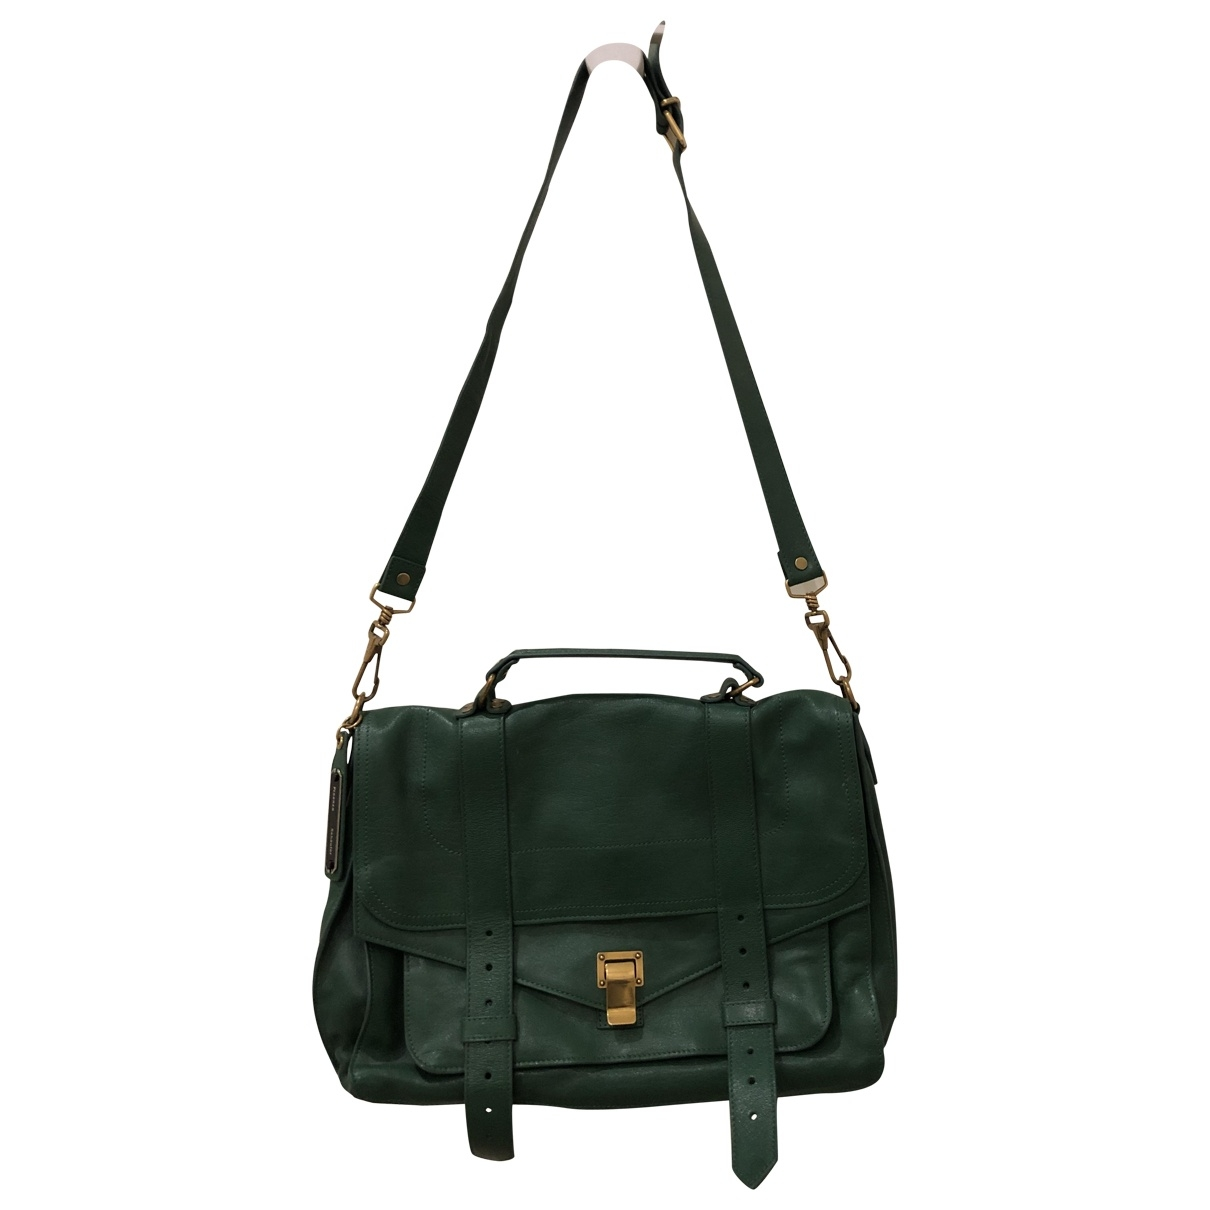 Proenza Schouler PS1 Large Green Leather handbag for Women \N